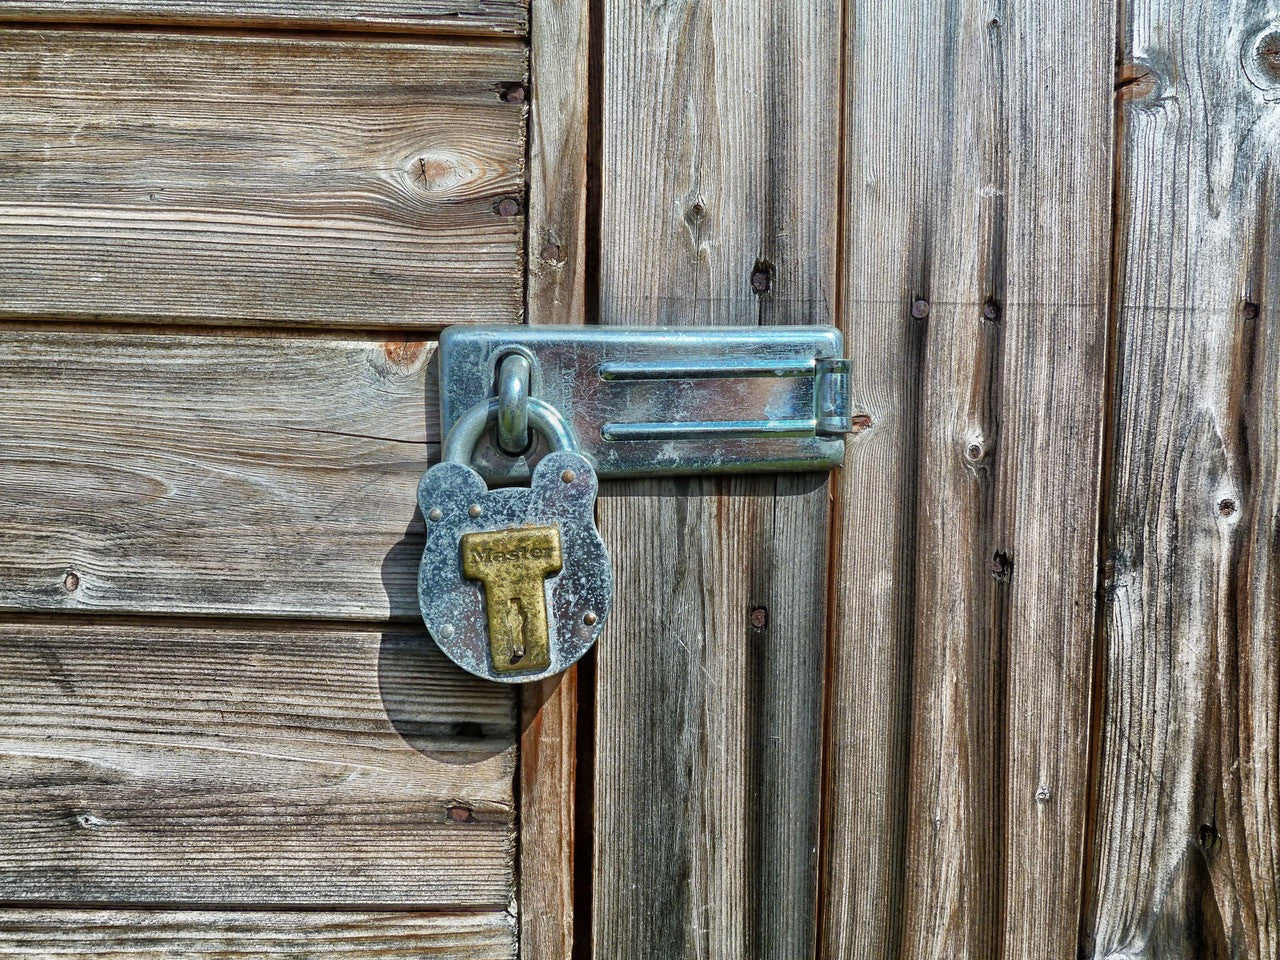 articles/garden-shed-latch-lock-building-65650.jpeg